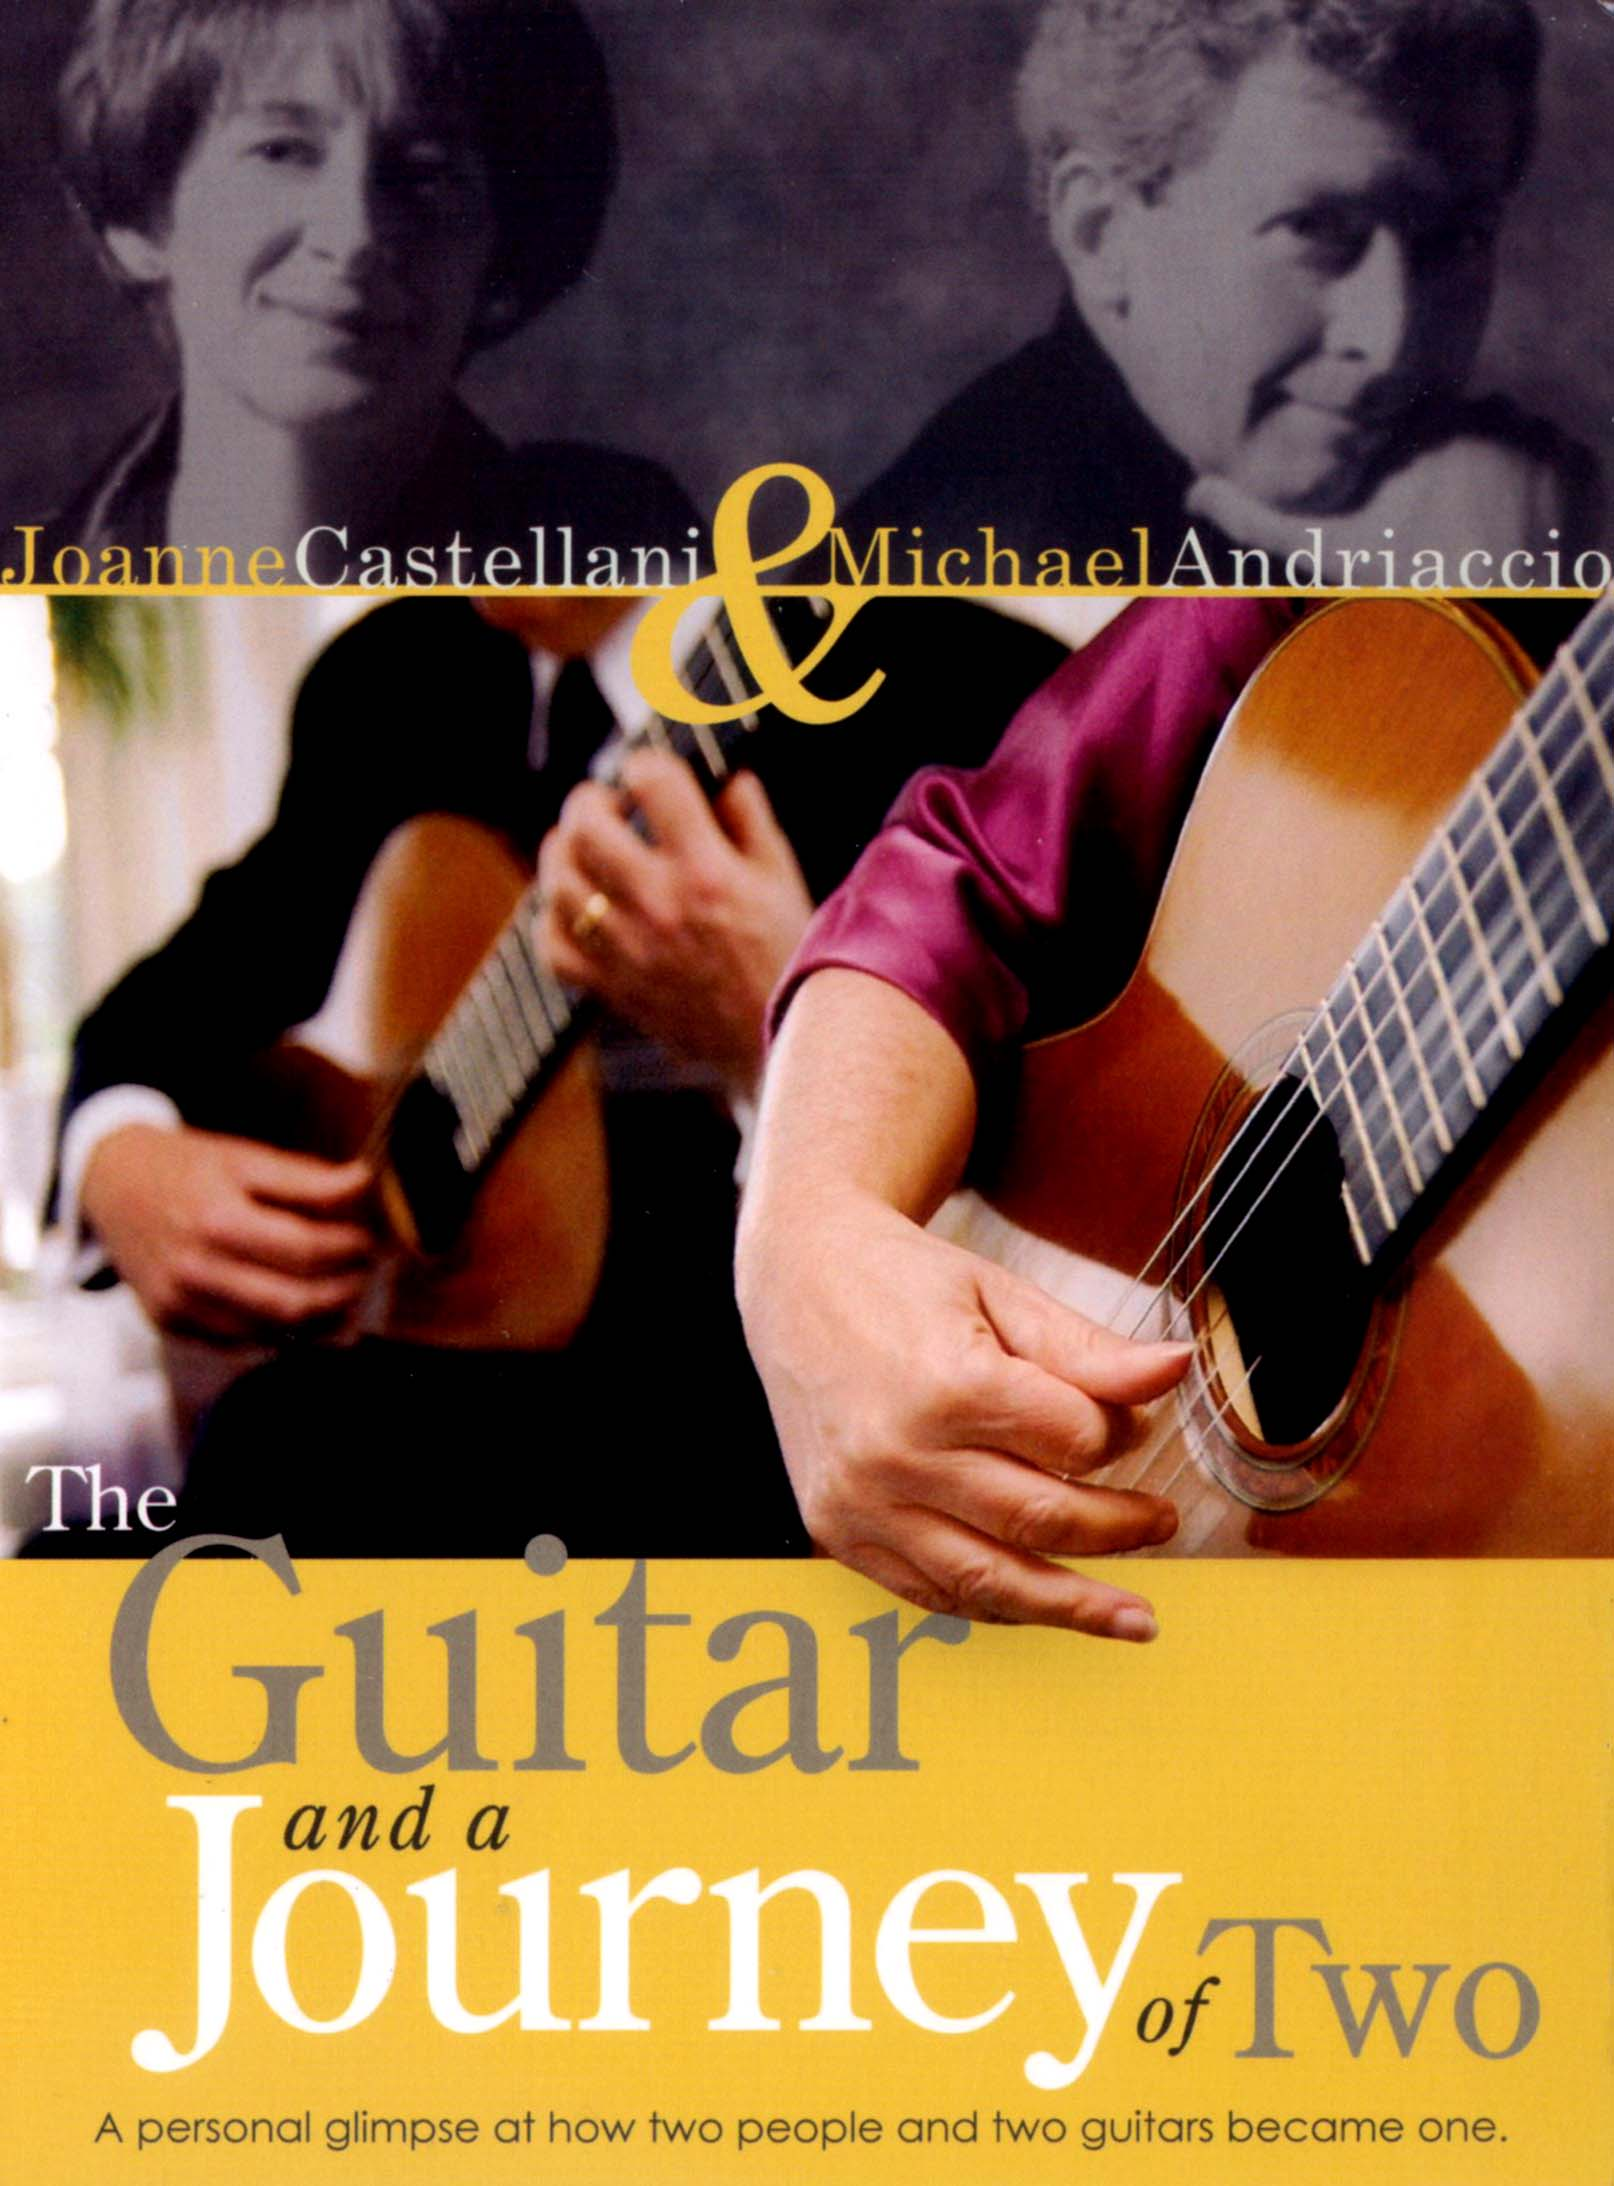 Joanne Castellani & Michael Andriaccio: The Guitar and a Journey of Two